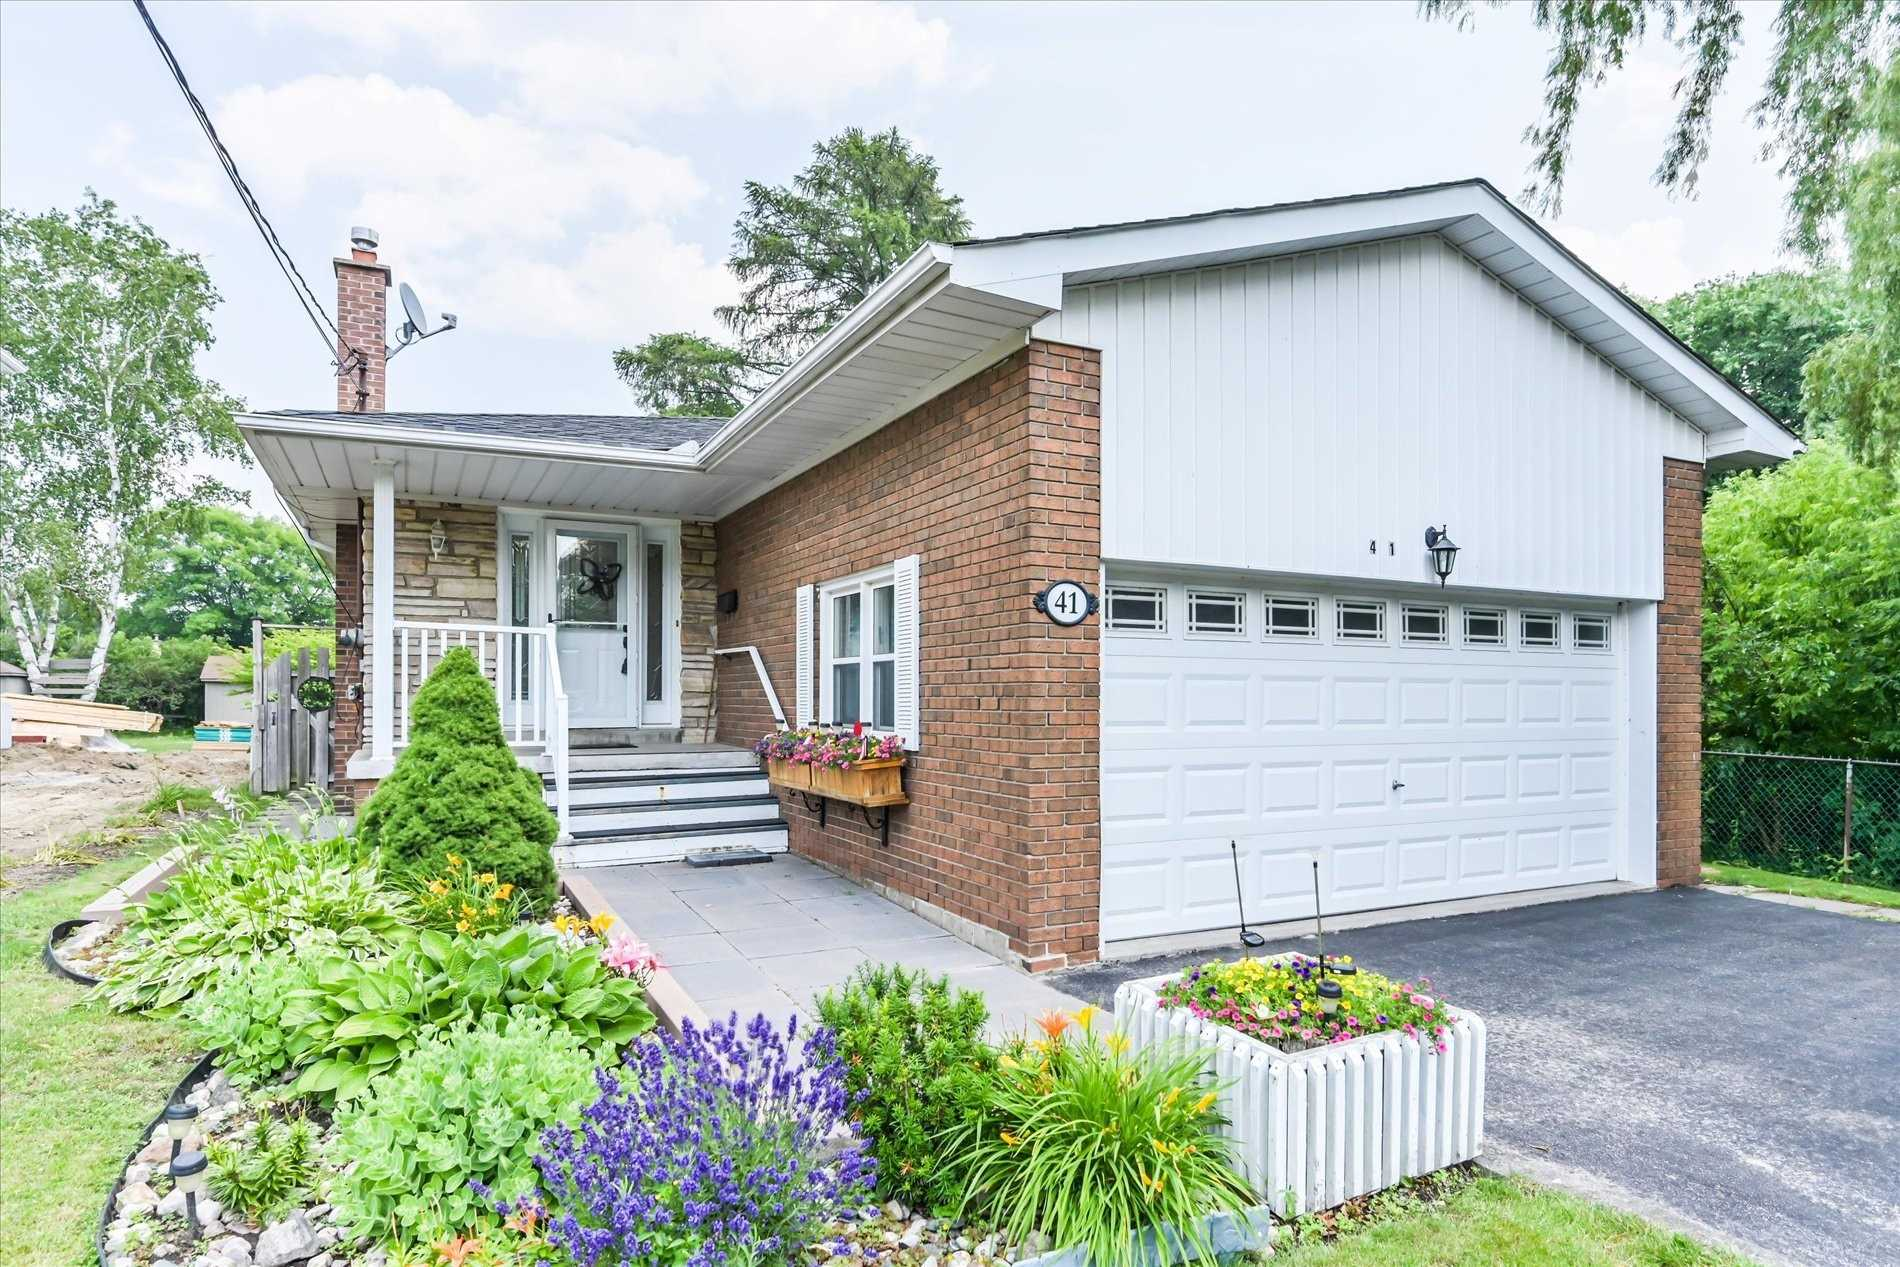 Detached house For Sale In Toronto - 41 Dunstall Cres, Toronto, Ontario, Canada M1E3M5 , 4 Bedrooms Bedrooms, ,2 BathroomsBathrooms,Detached,For Sale,Dunstall